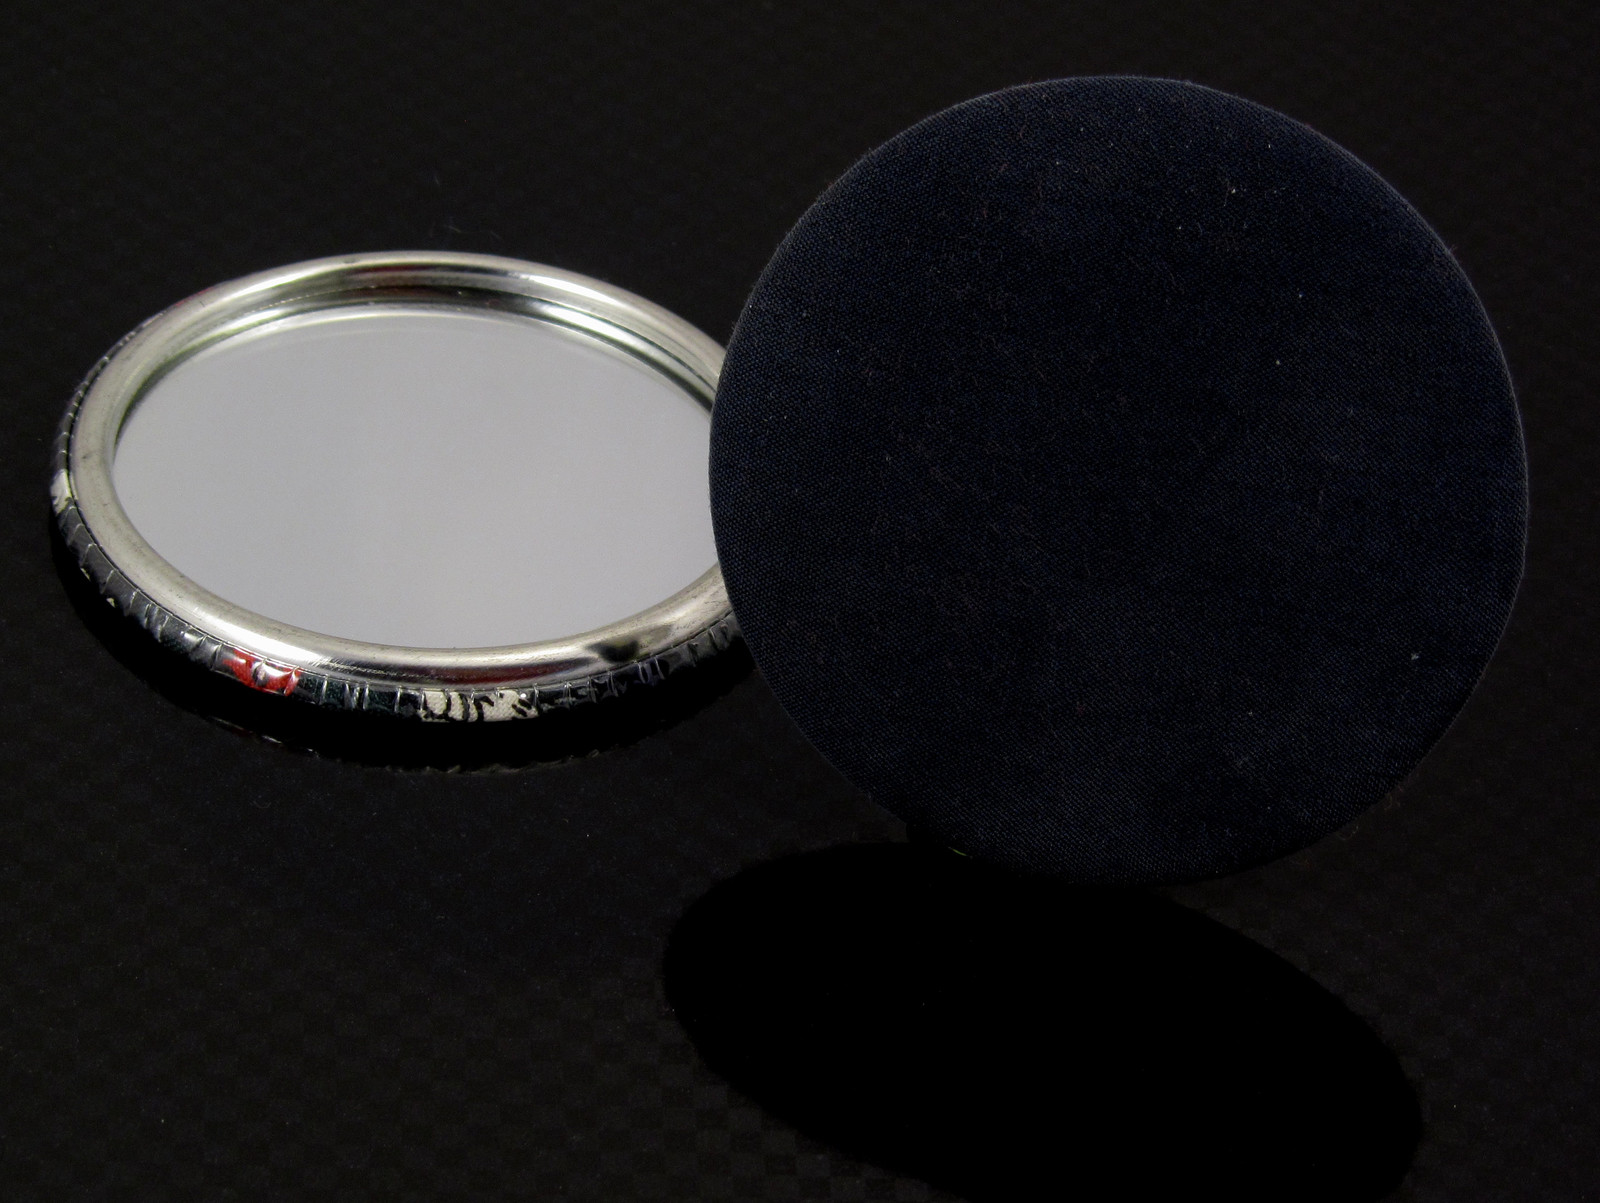 58mm mirror backed and FABRIC covered lipstick mirror badge